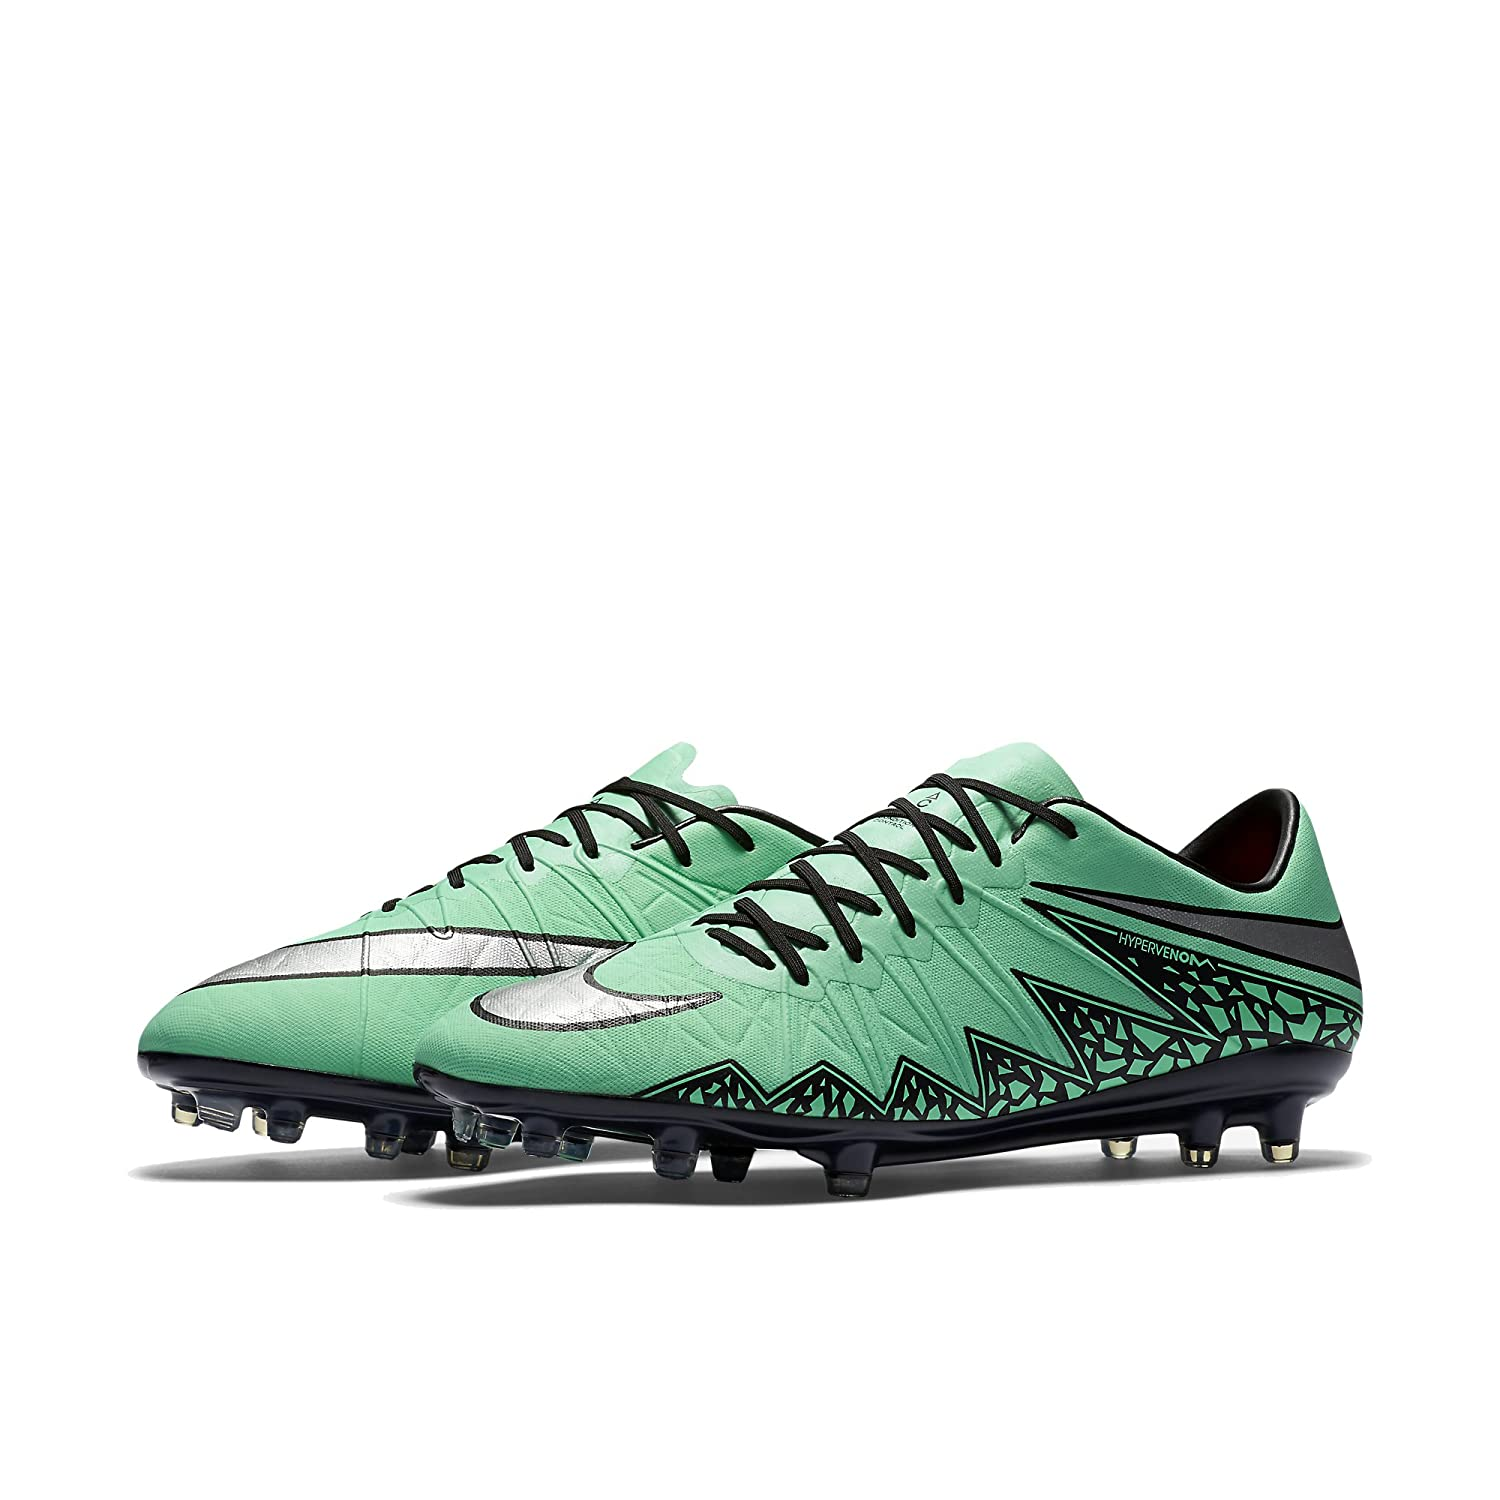 check out 11a3b c71a3 Amazon.com   Nike Mens Hyopervenom Phinish Leather SG Pro Soccer Embossed  Cleats   Soccer